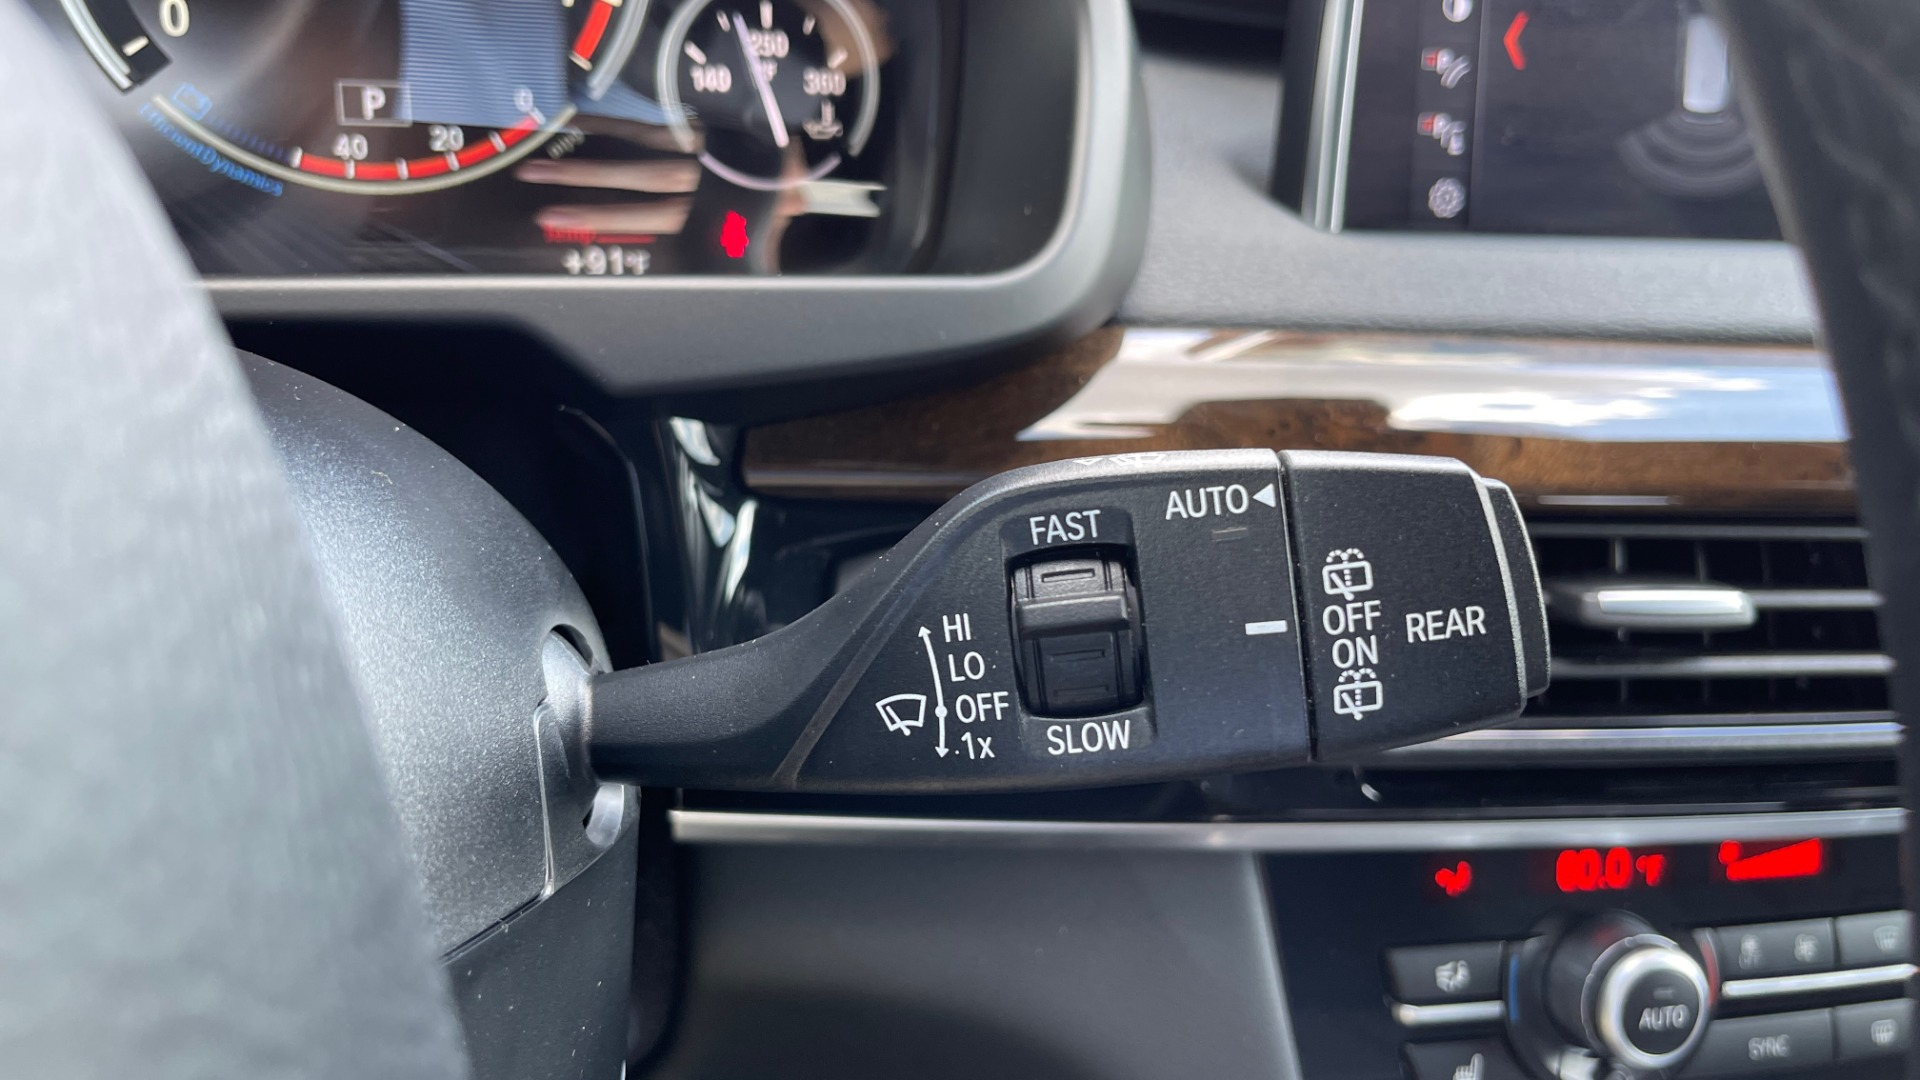 Used 2018 BMW X5 XDRIVE35I PREMIUM / DRVR ASST / WIRELESS CHARGING / CAMERAS for sale $46,995 at Formula Imports in Charlotte NC 28227 45